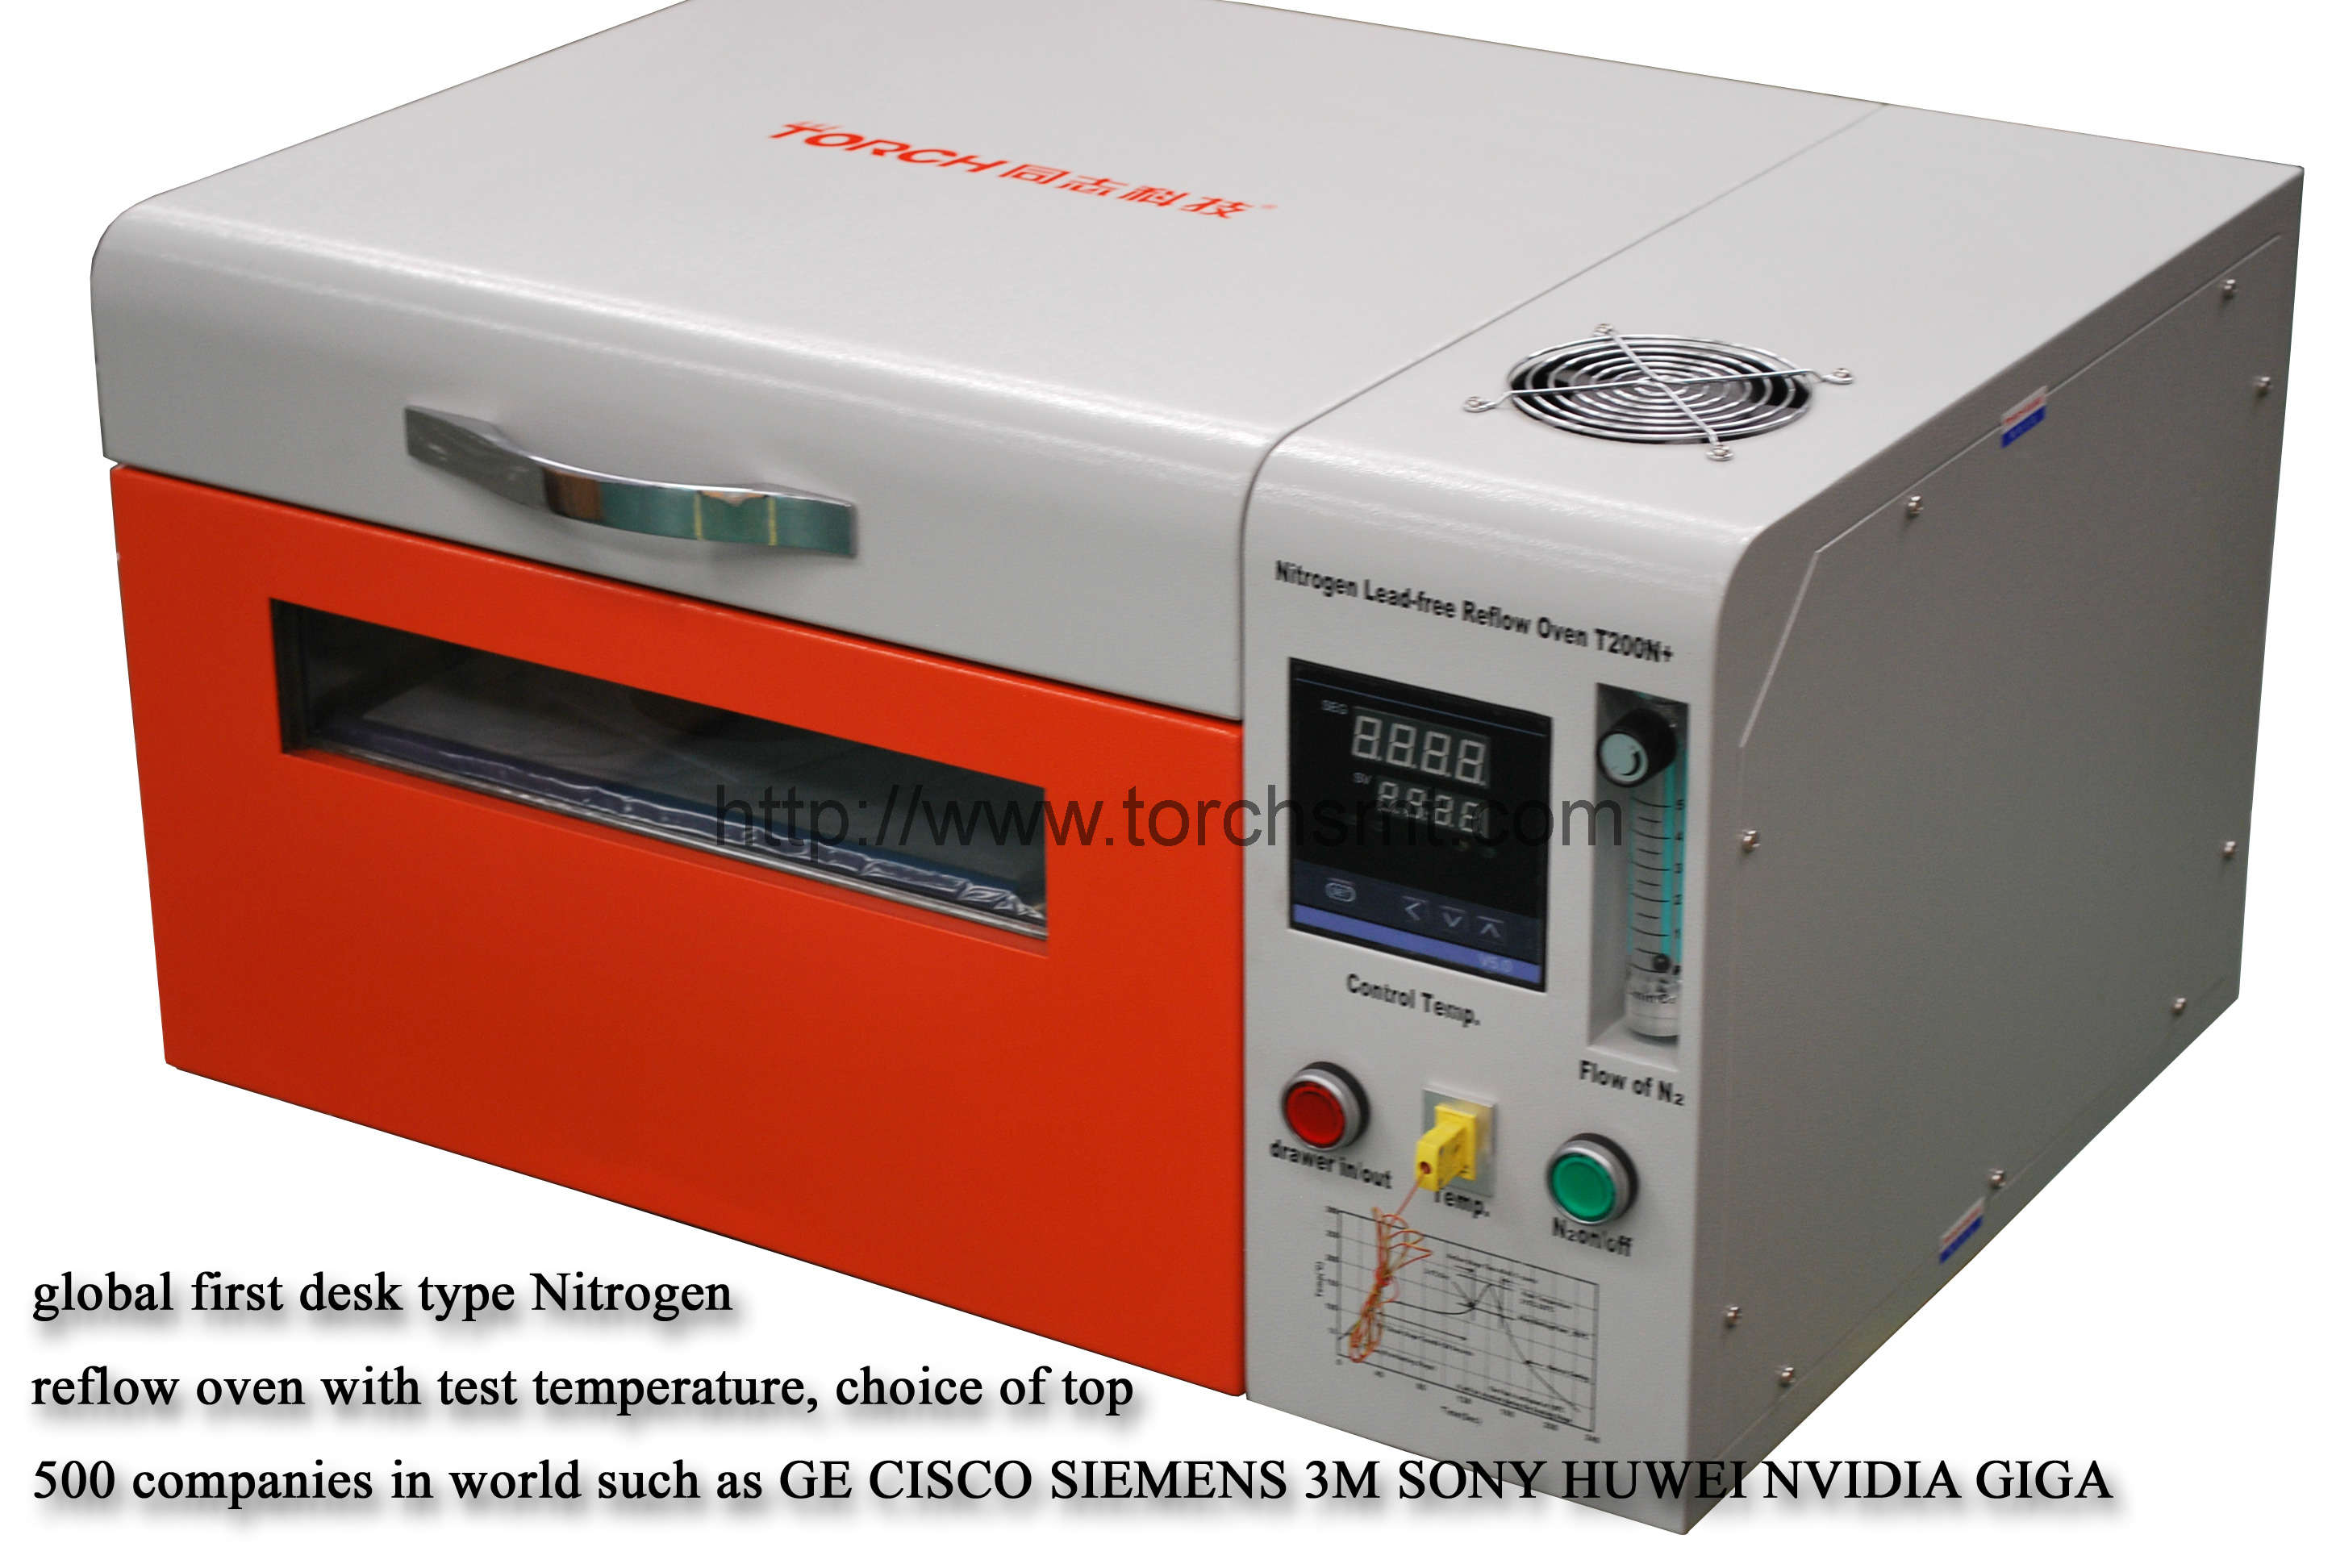 Lead free reflow oven with temperature testing T200N+